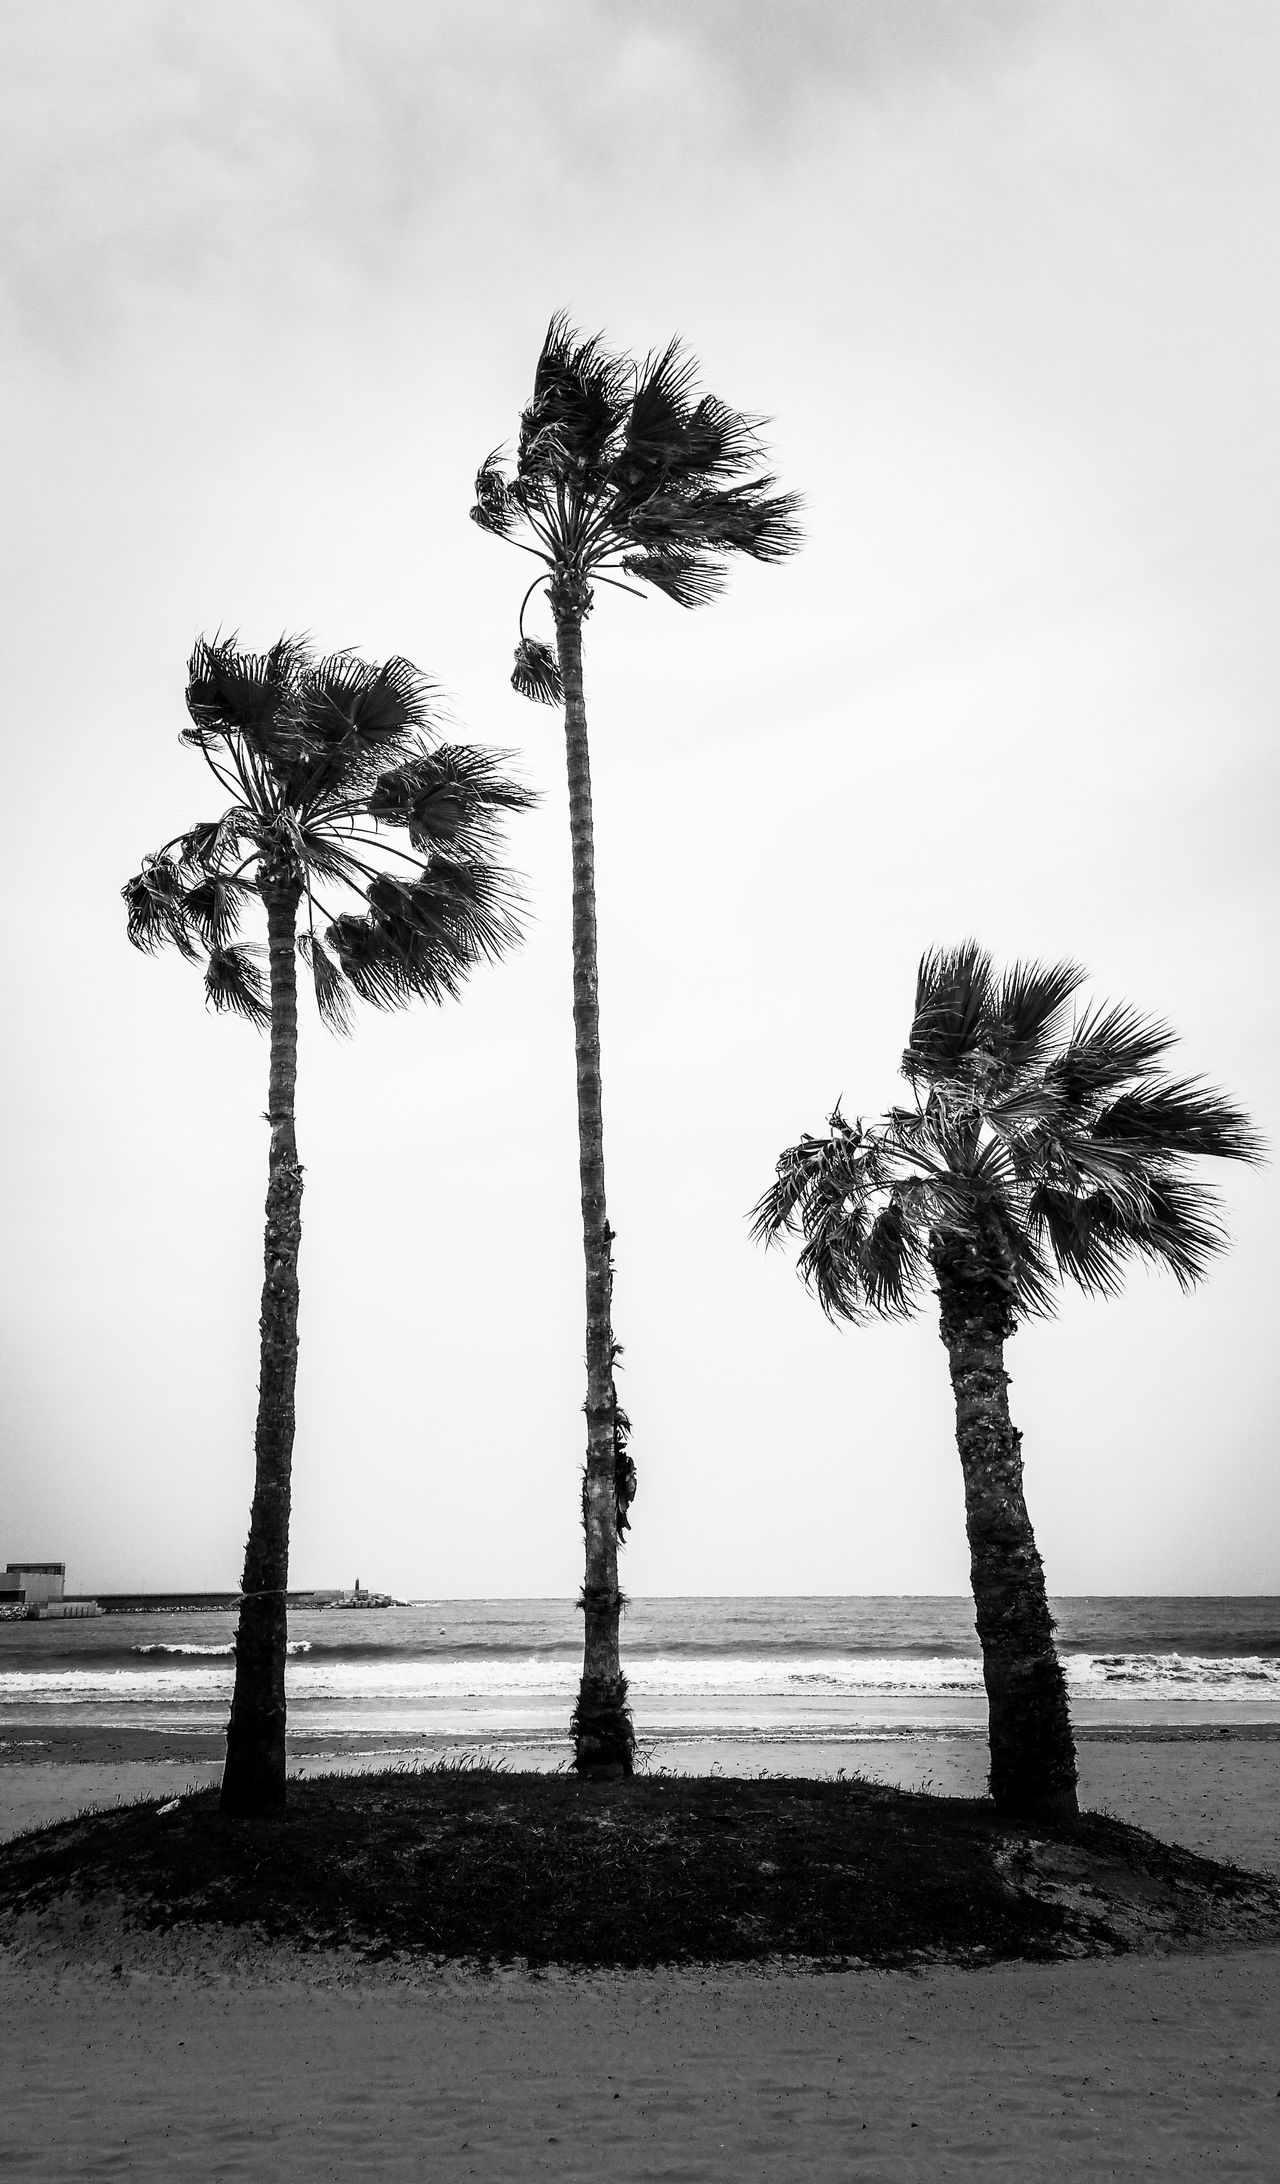 No People Silhouette Tree Sky Day Outdoors Windswept Palm Tree Palm Trees Palmas Torrevieja Water Mediterranean  Blackandwhite Seaside Beach Three